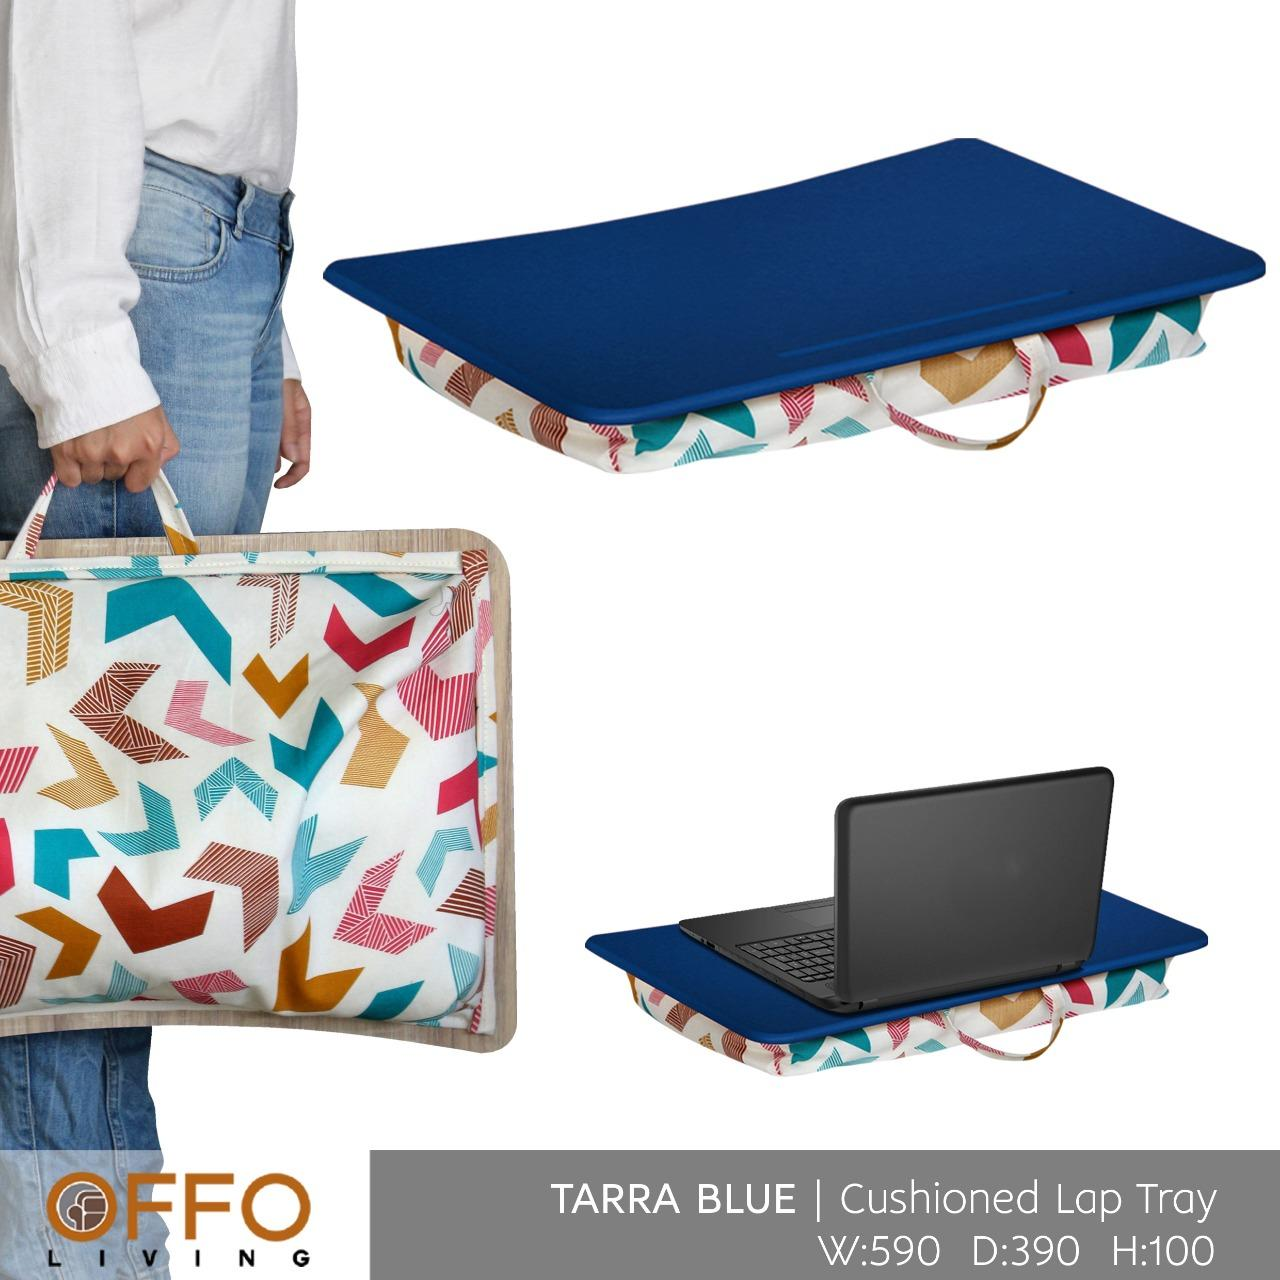 Offo Living - Bantal Laptop Tarra Cushioned Lap Tray By Offo Living Cibubur.